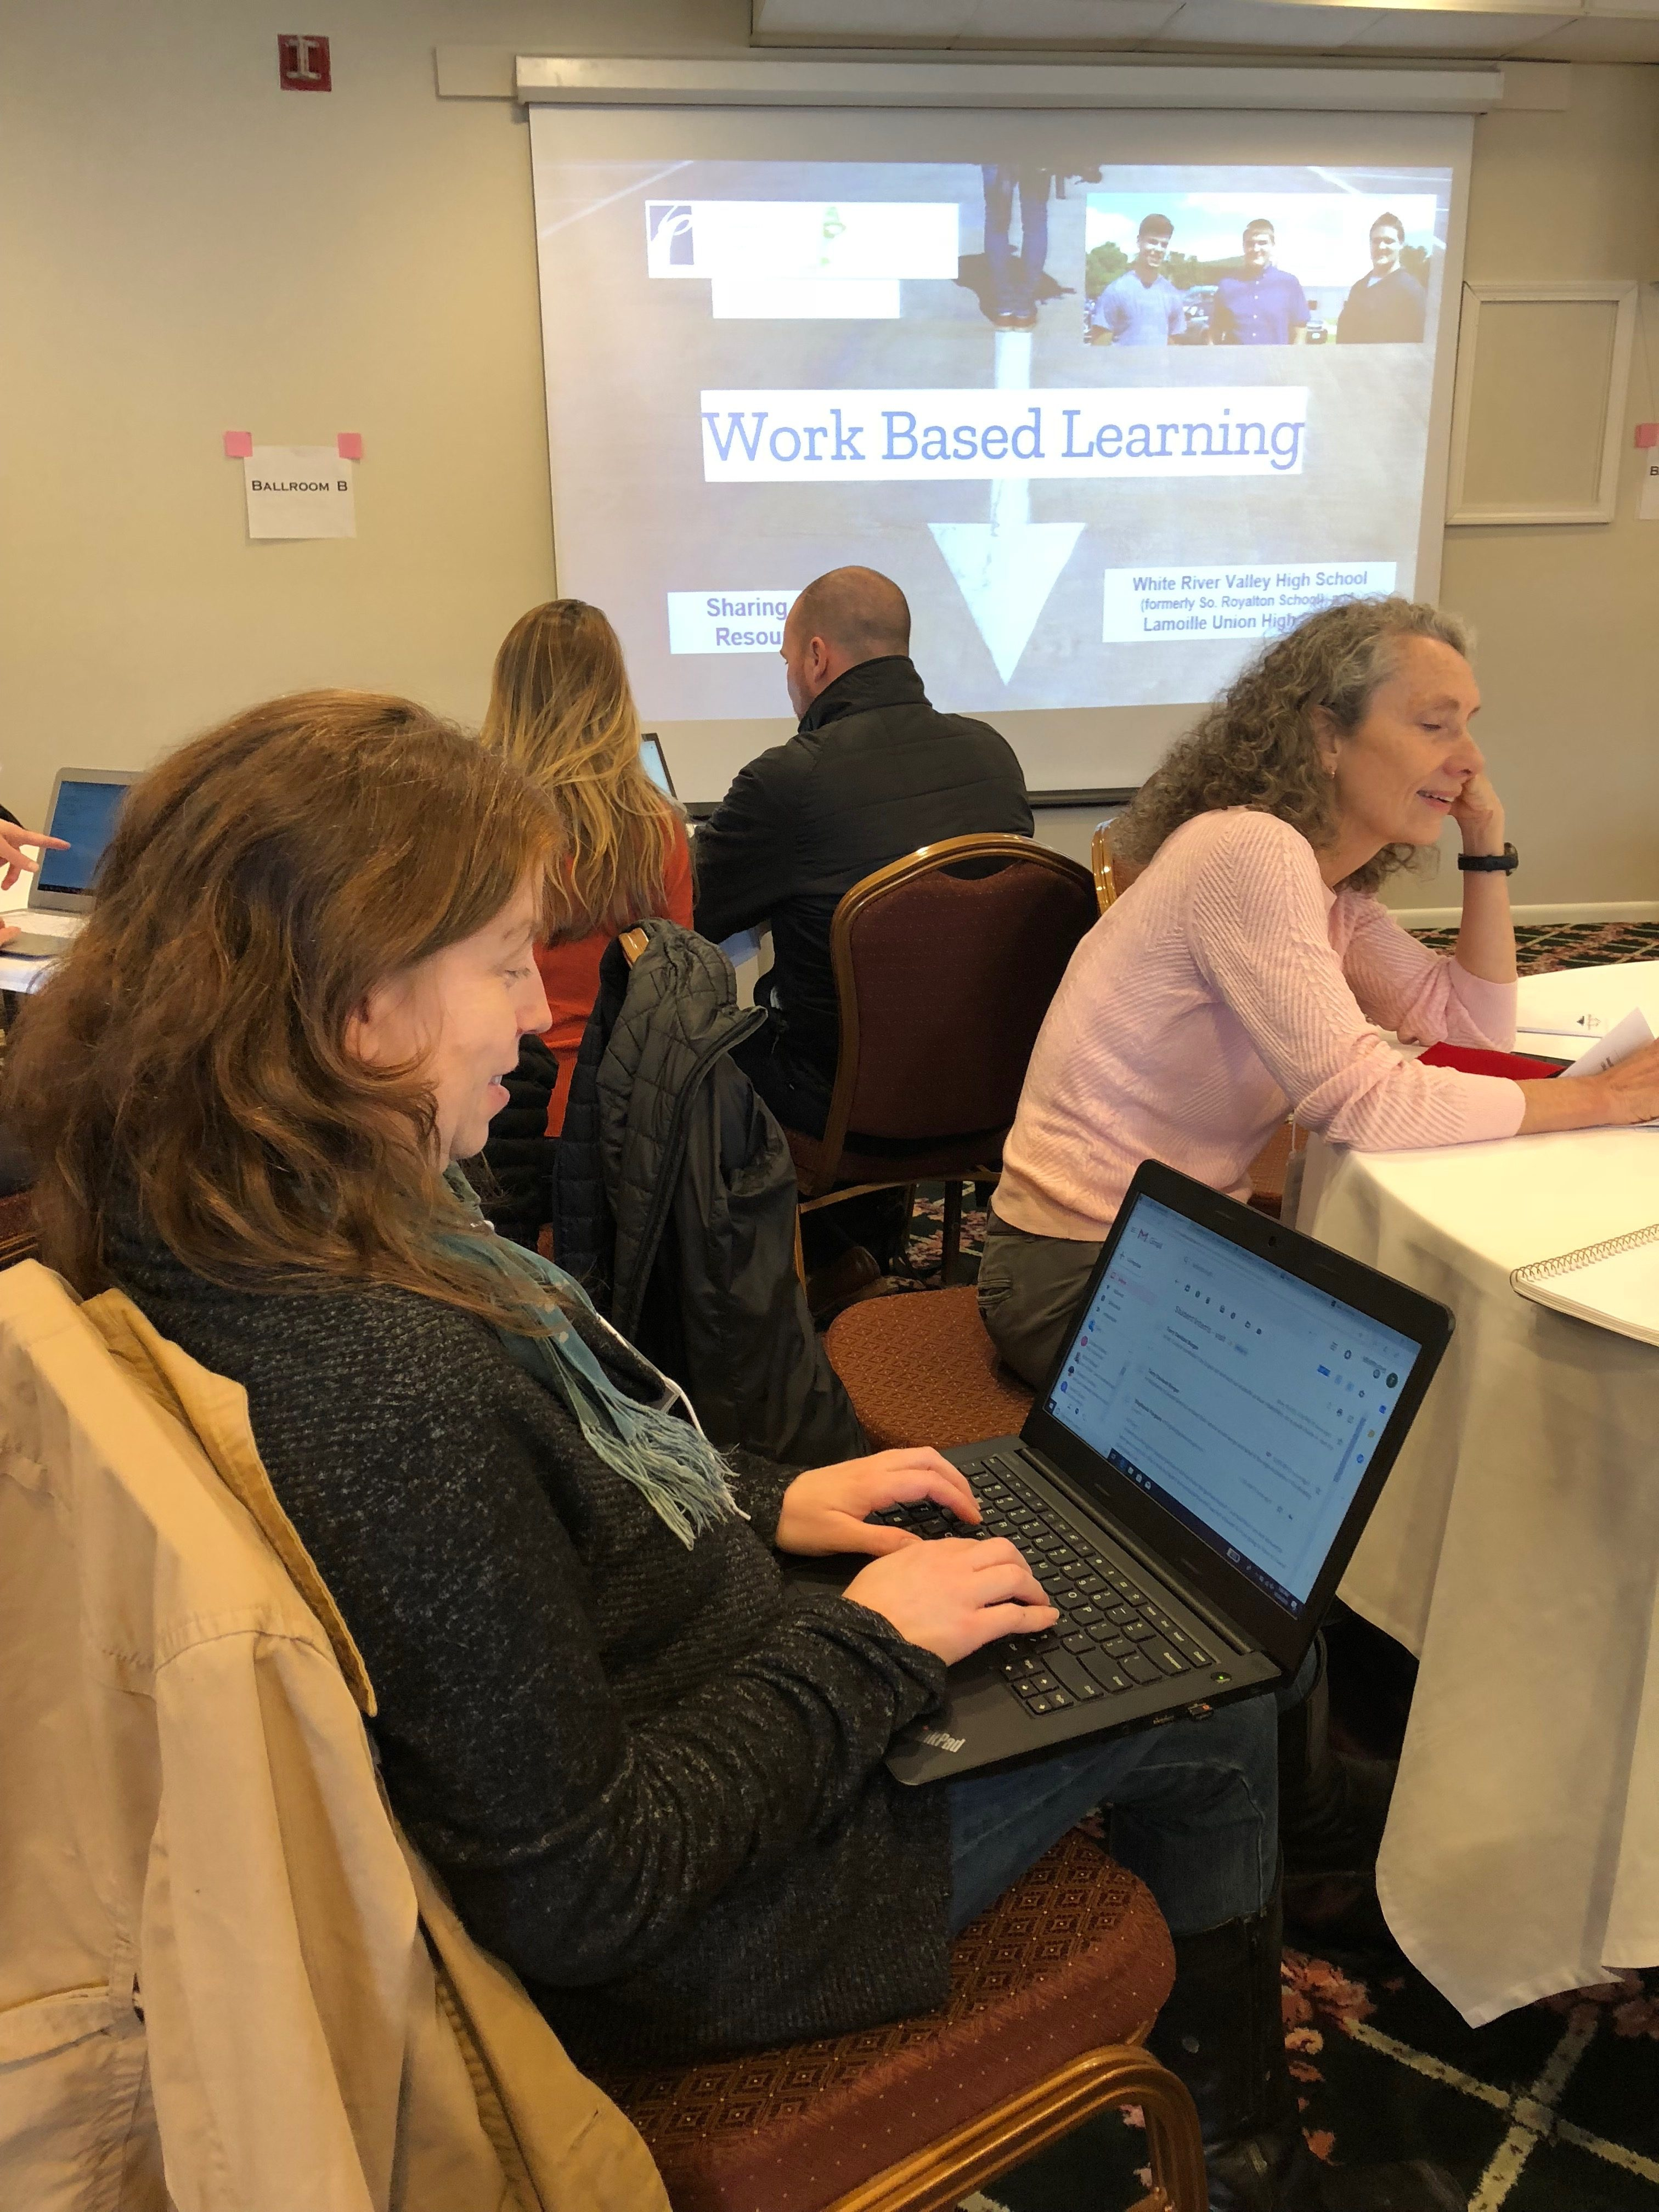 Terry Davidson-Berger, Work-Based Learning Coordinator At Leland & Gray High School Gathers Resources From A Successful Program Launched At White River Valley High School.